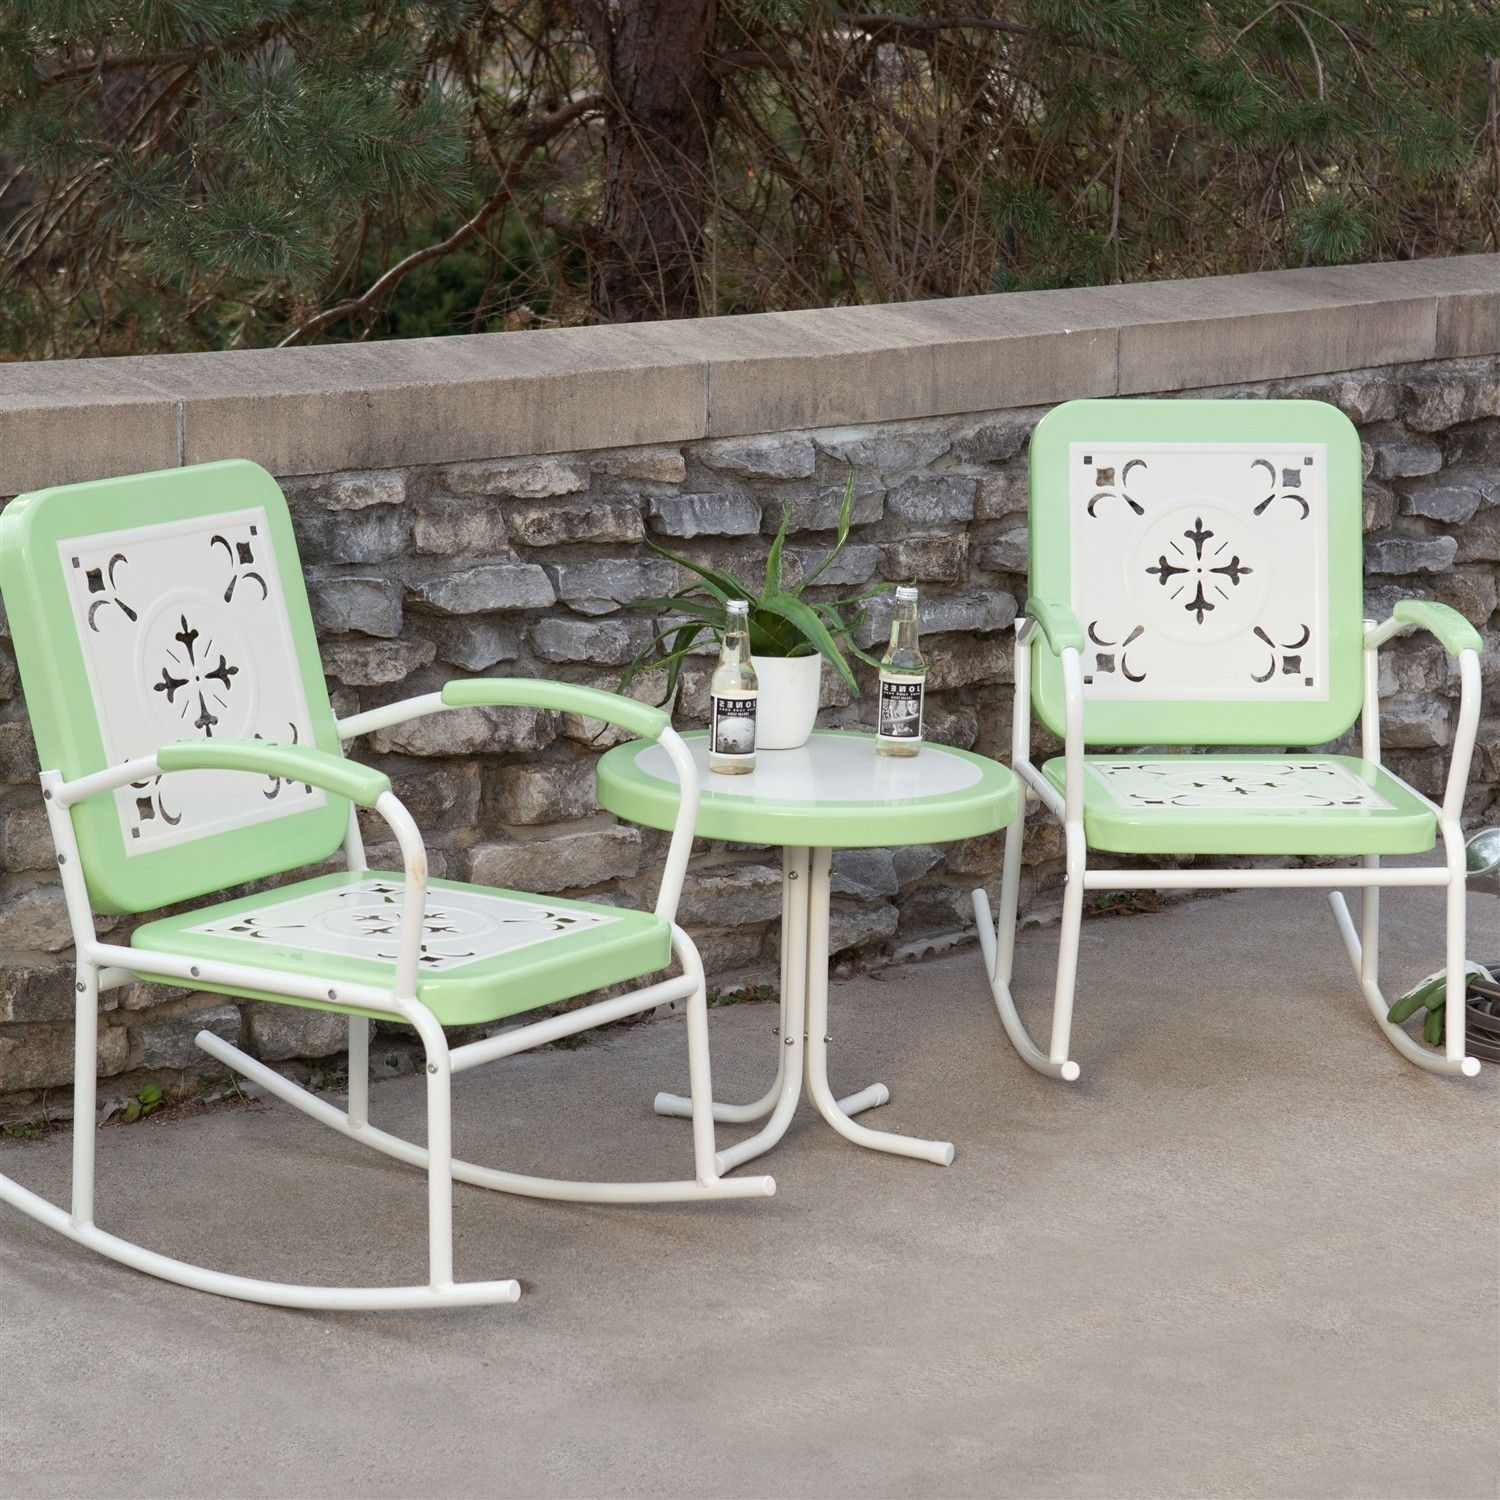 Mint Green Retro Patio 3 Piece Metal Rocker Rocking Chair Set | New With Regard To Outside Rocking Chair Sets (View 8 of 15)